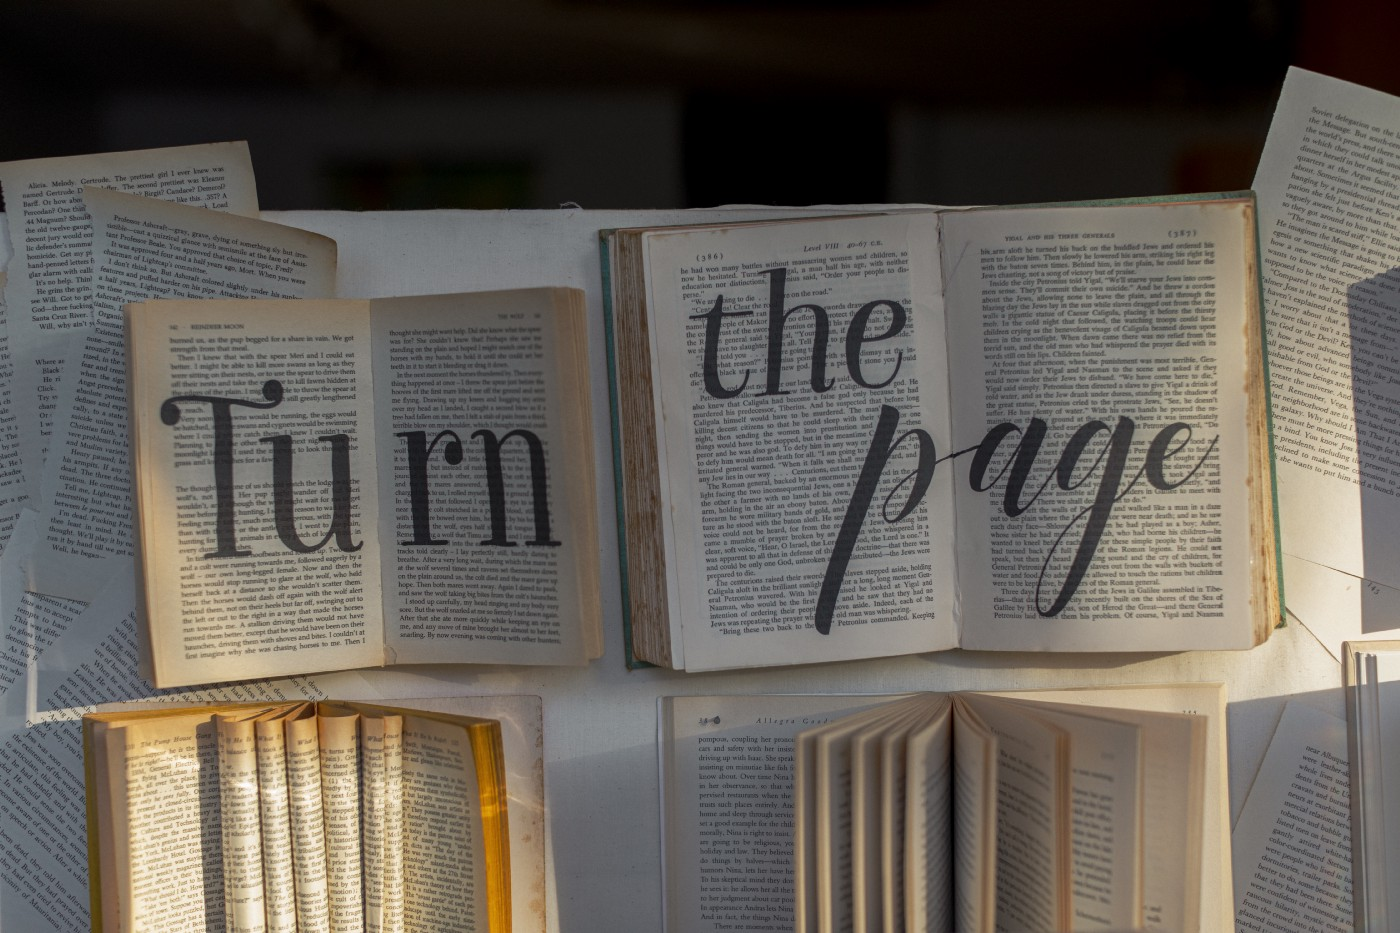 photo of books and printed on them the words TURN THE PAGE